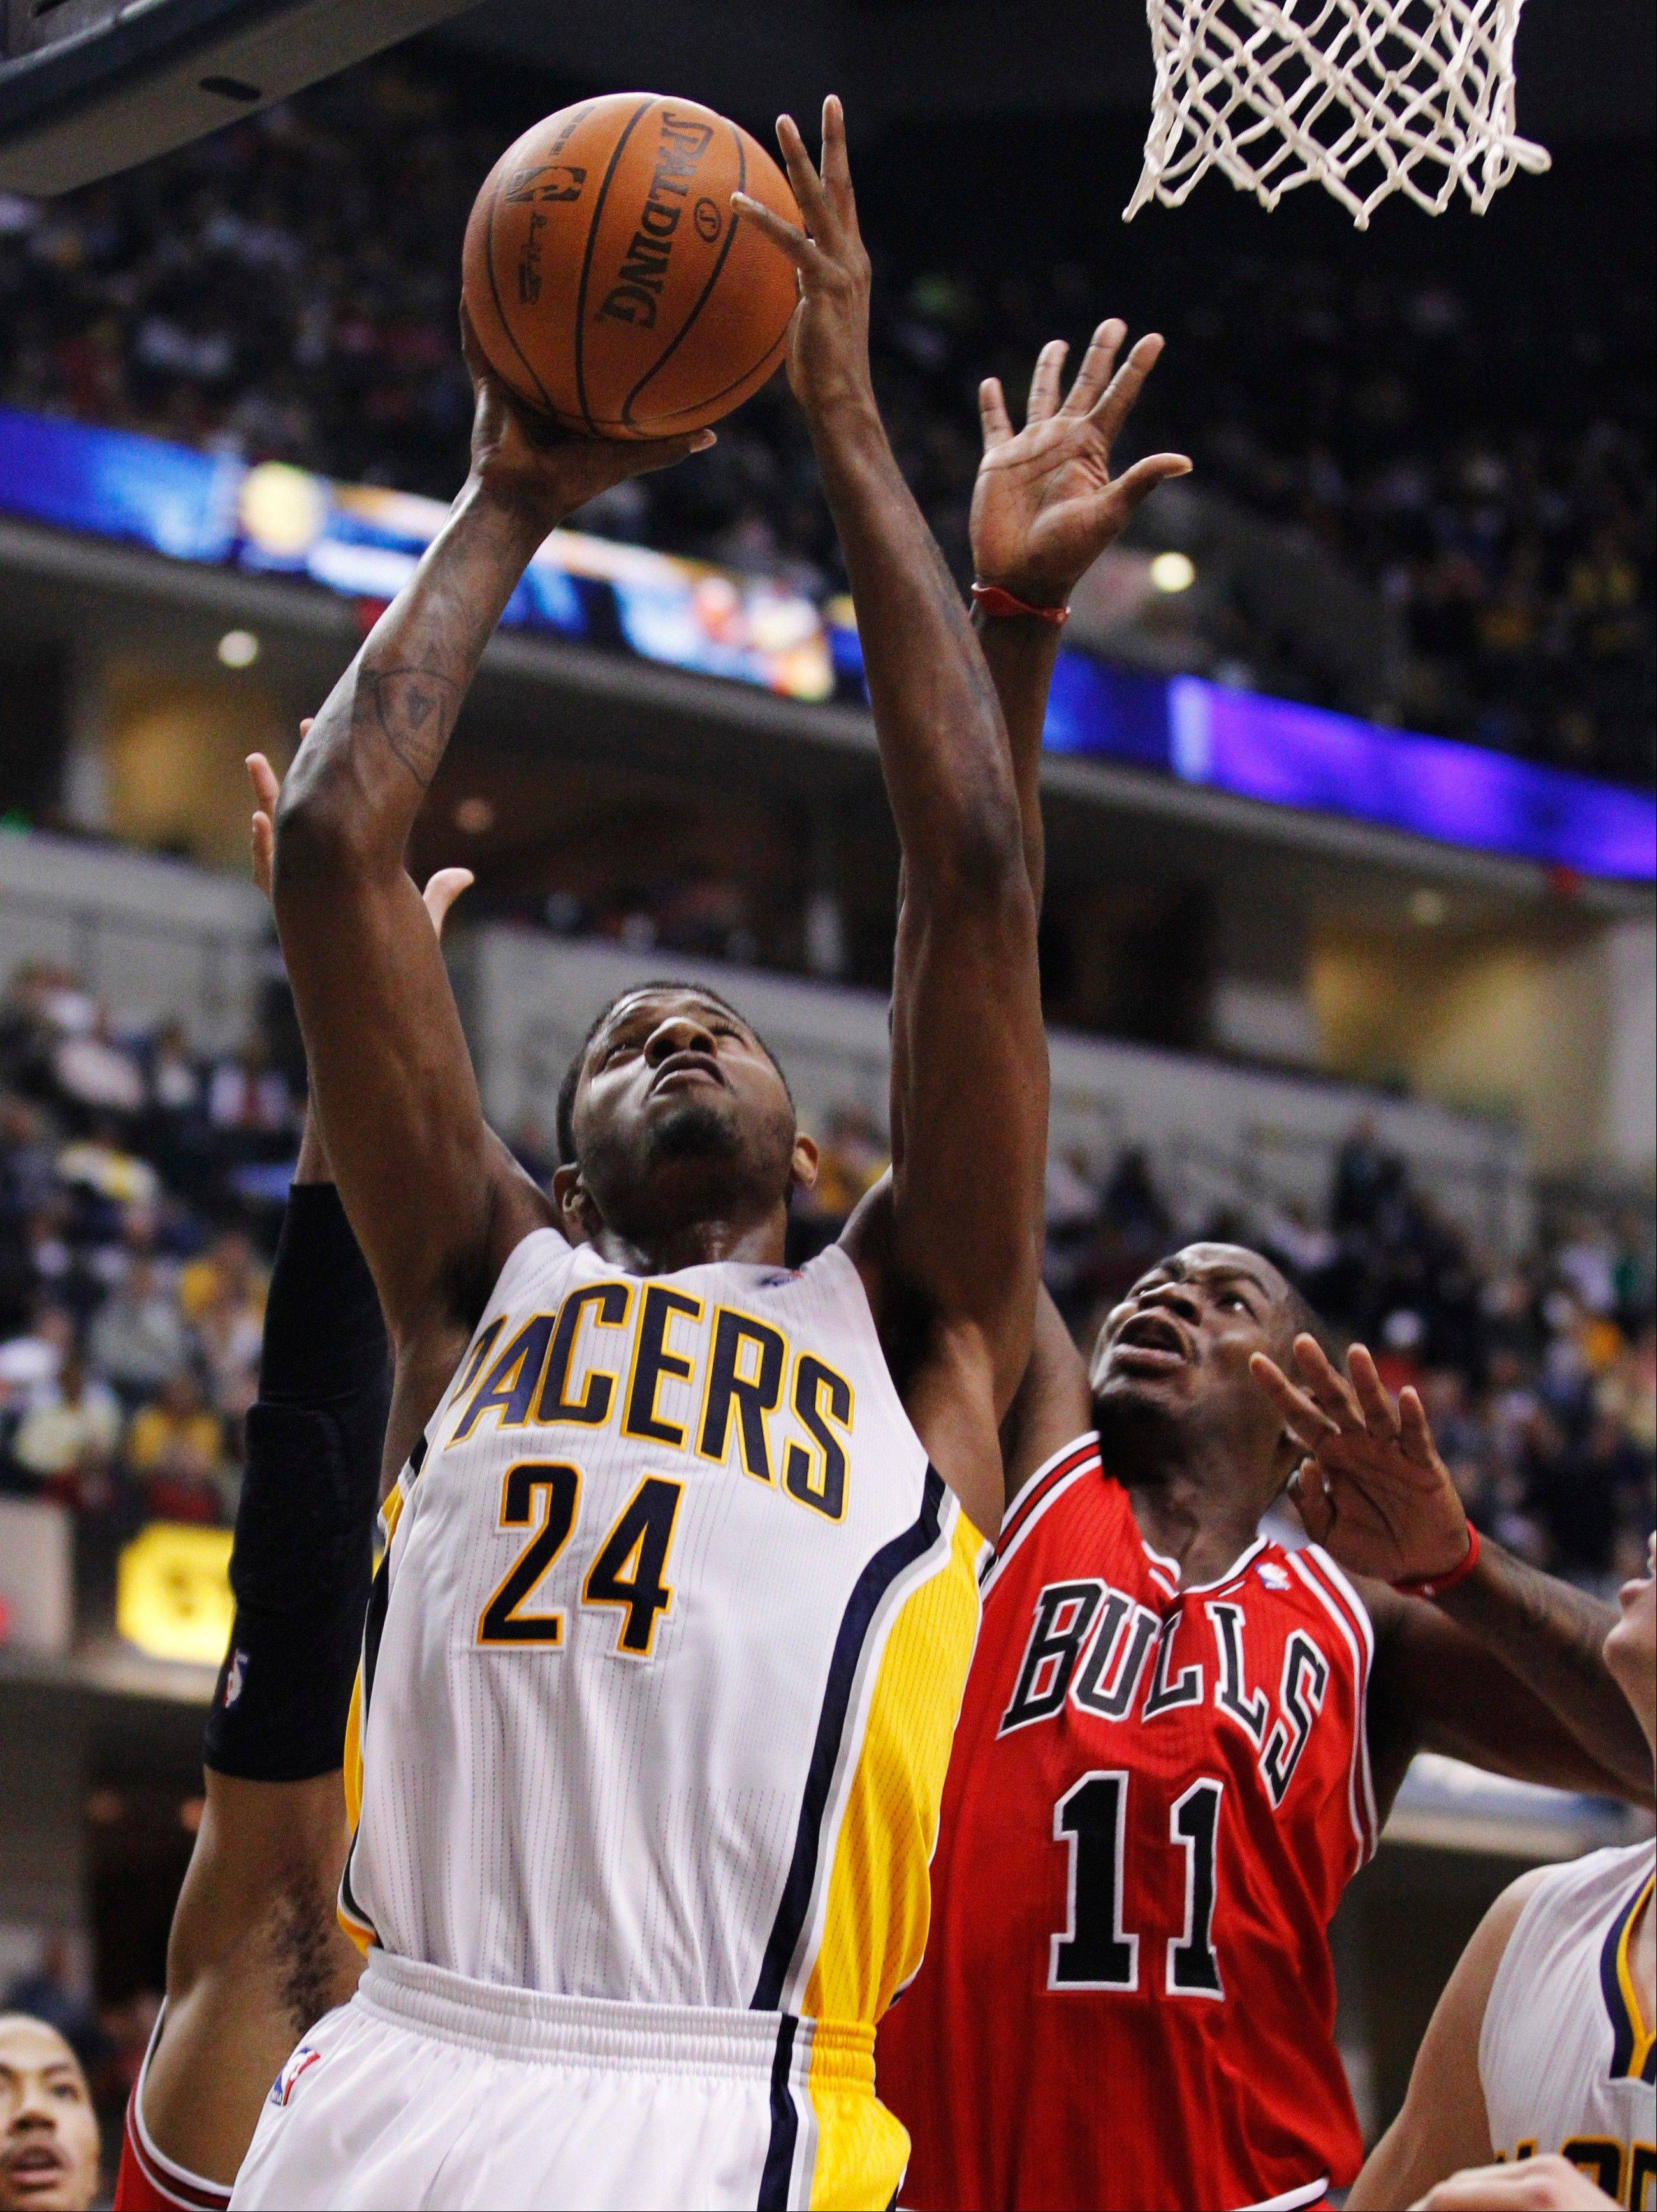 A survey of NBA GMs posits that the Indiana Pacers will win the Central Division this season. Indiana forward Paul George, left, is seen shooting under pressure from Bulls guard Ronnie Brewer in this game from last December.